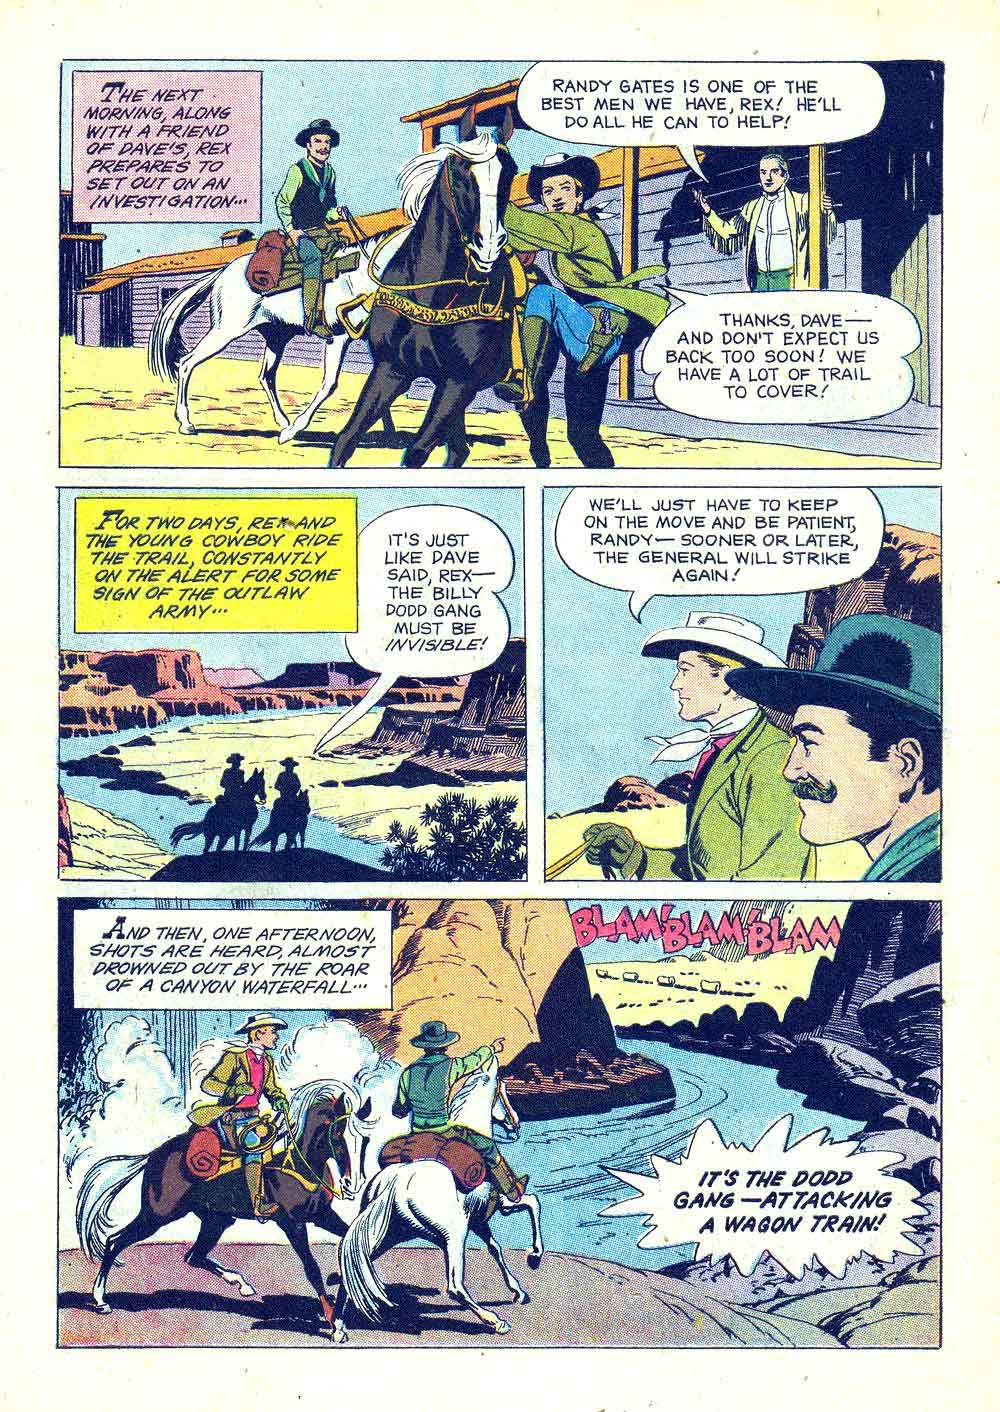 Rex Allen v1 #29 dell western comic book page art by Russ Manning